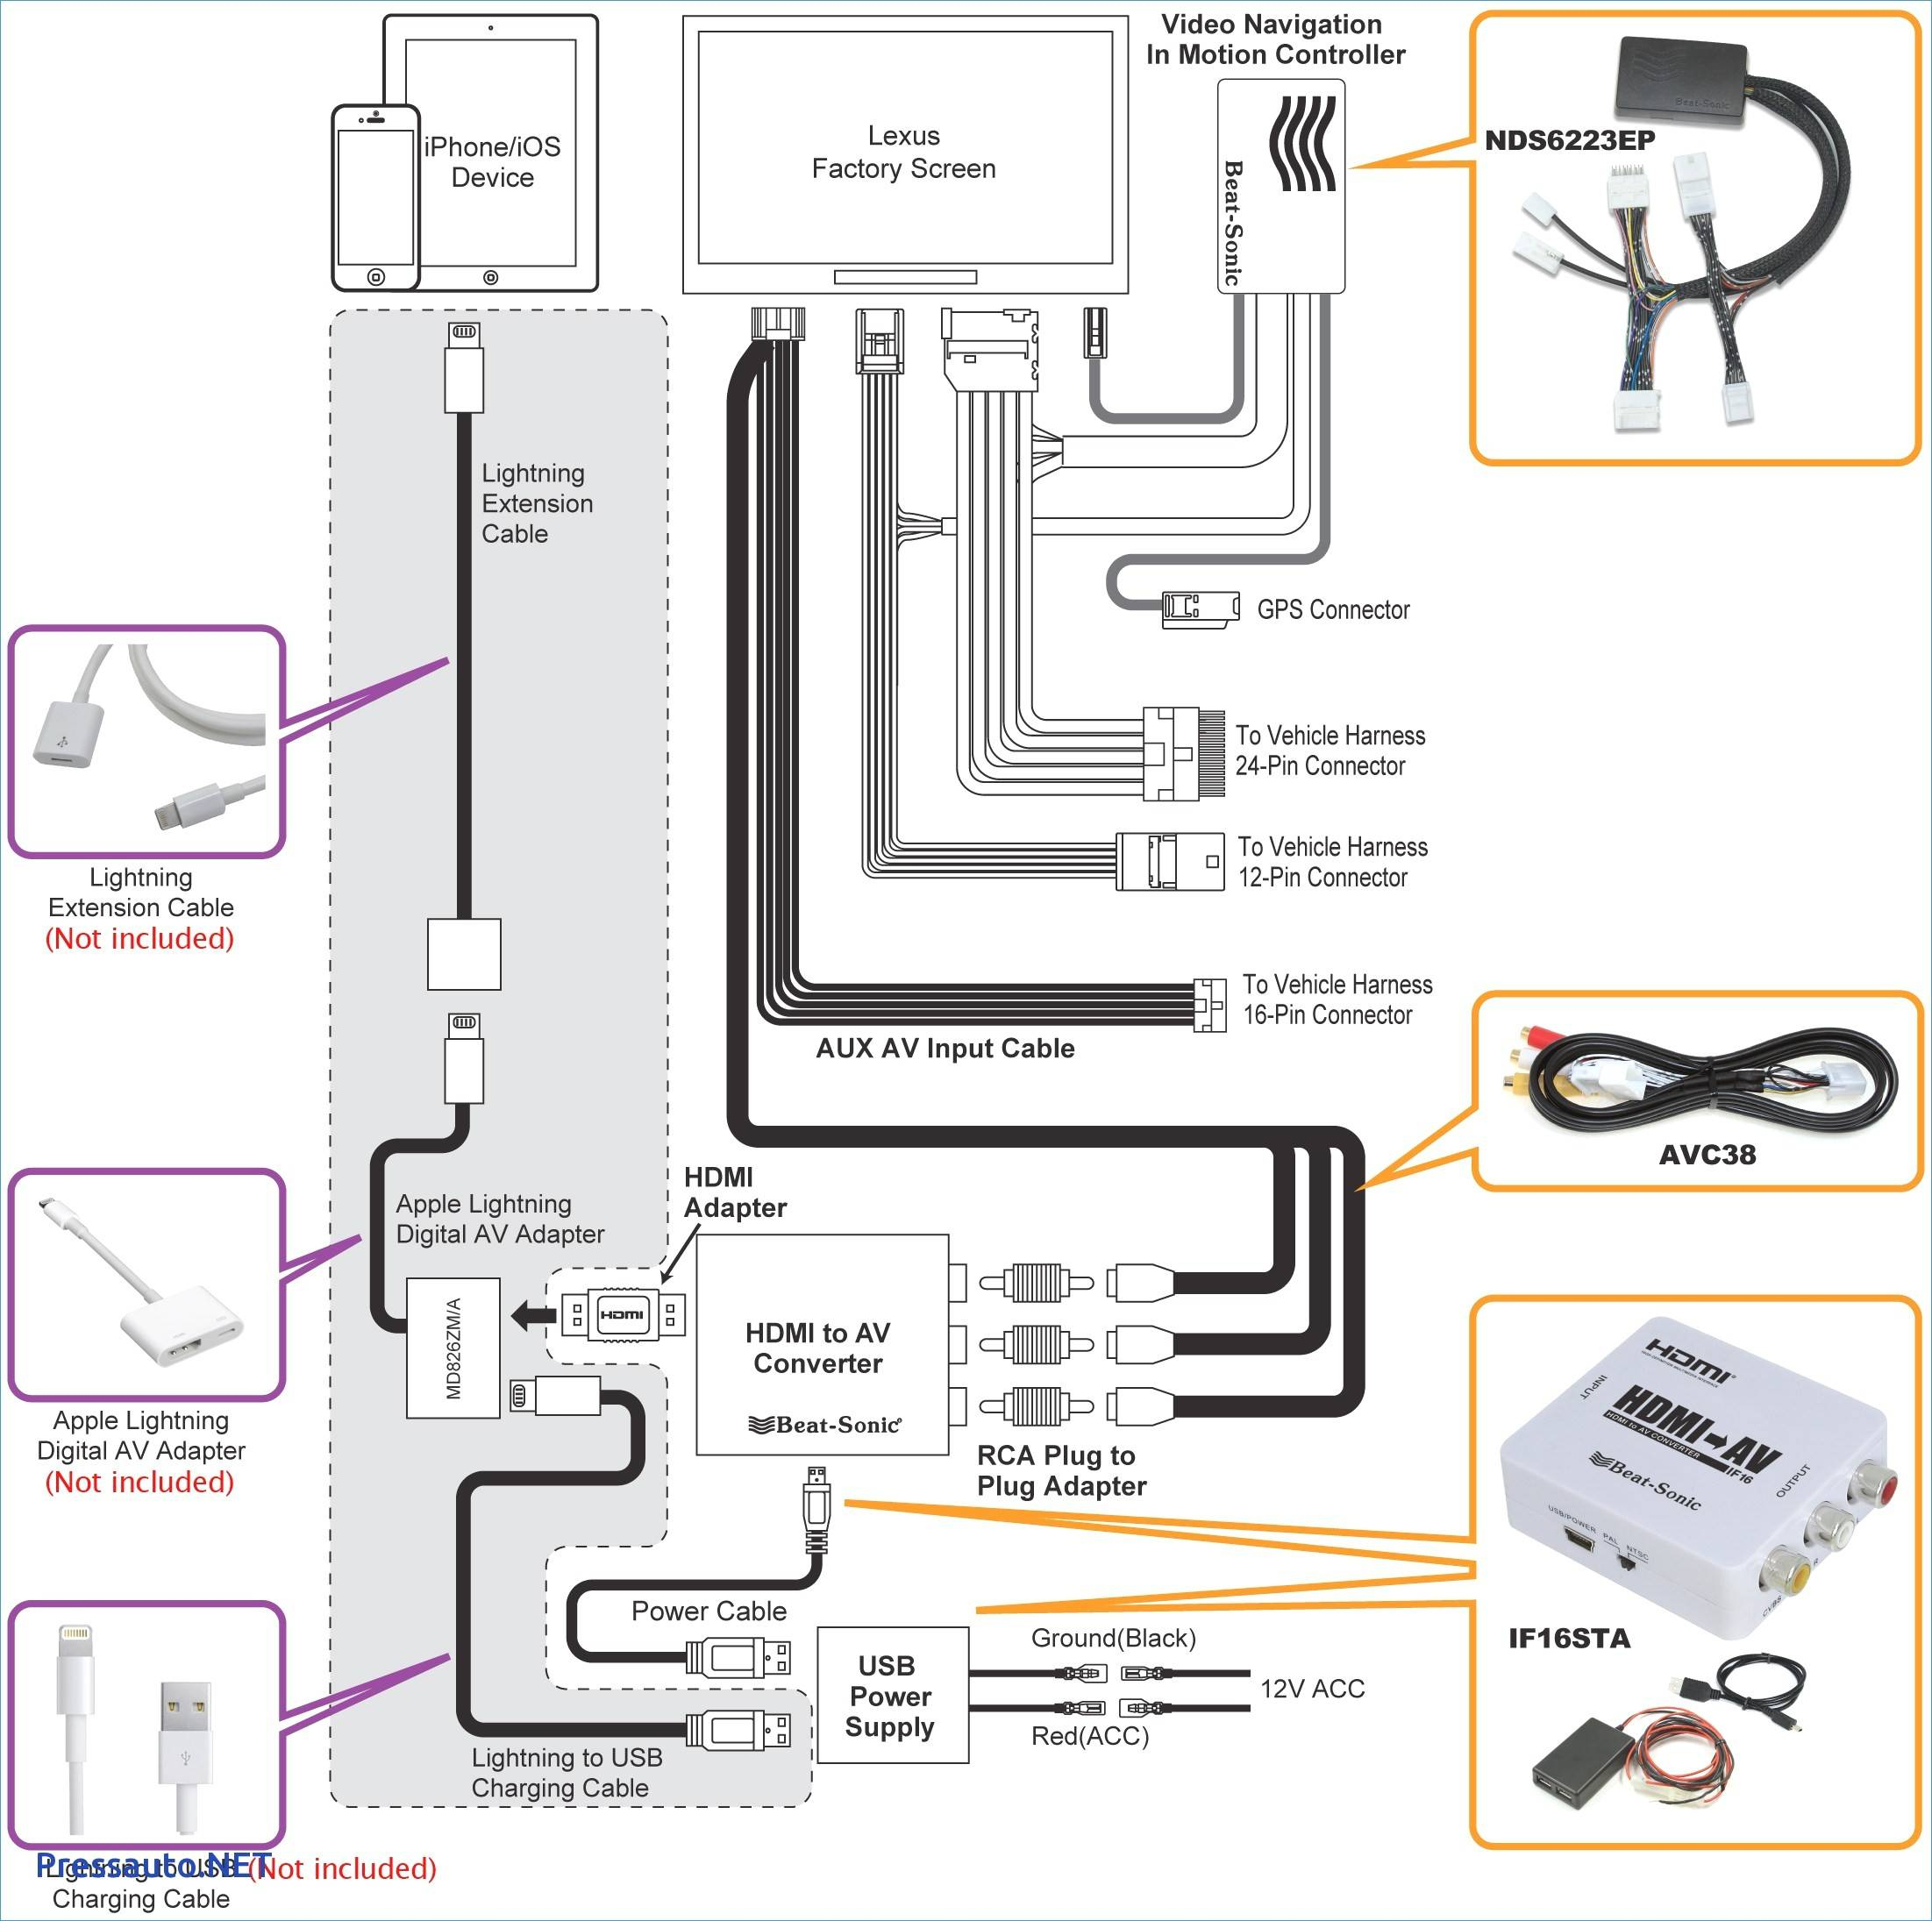 Usb 2 Wiring Diagram | Wiring Library - Usb Hub Wiring Diagram